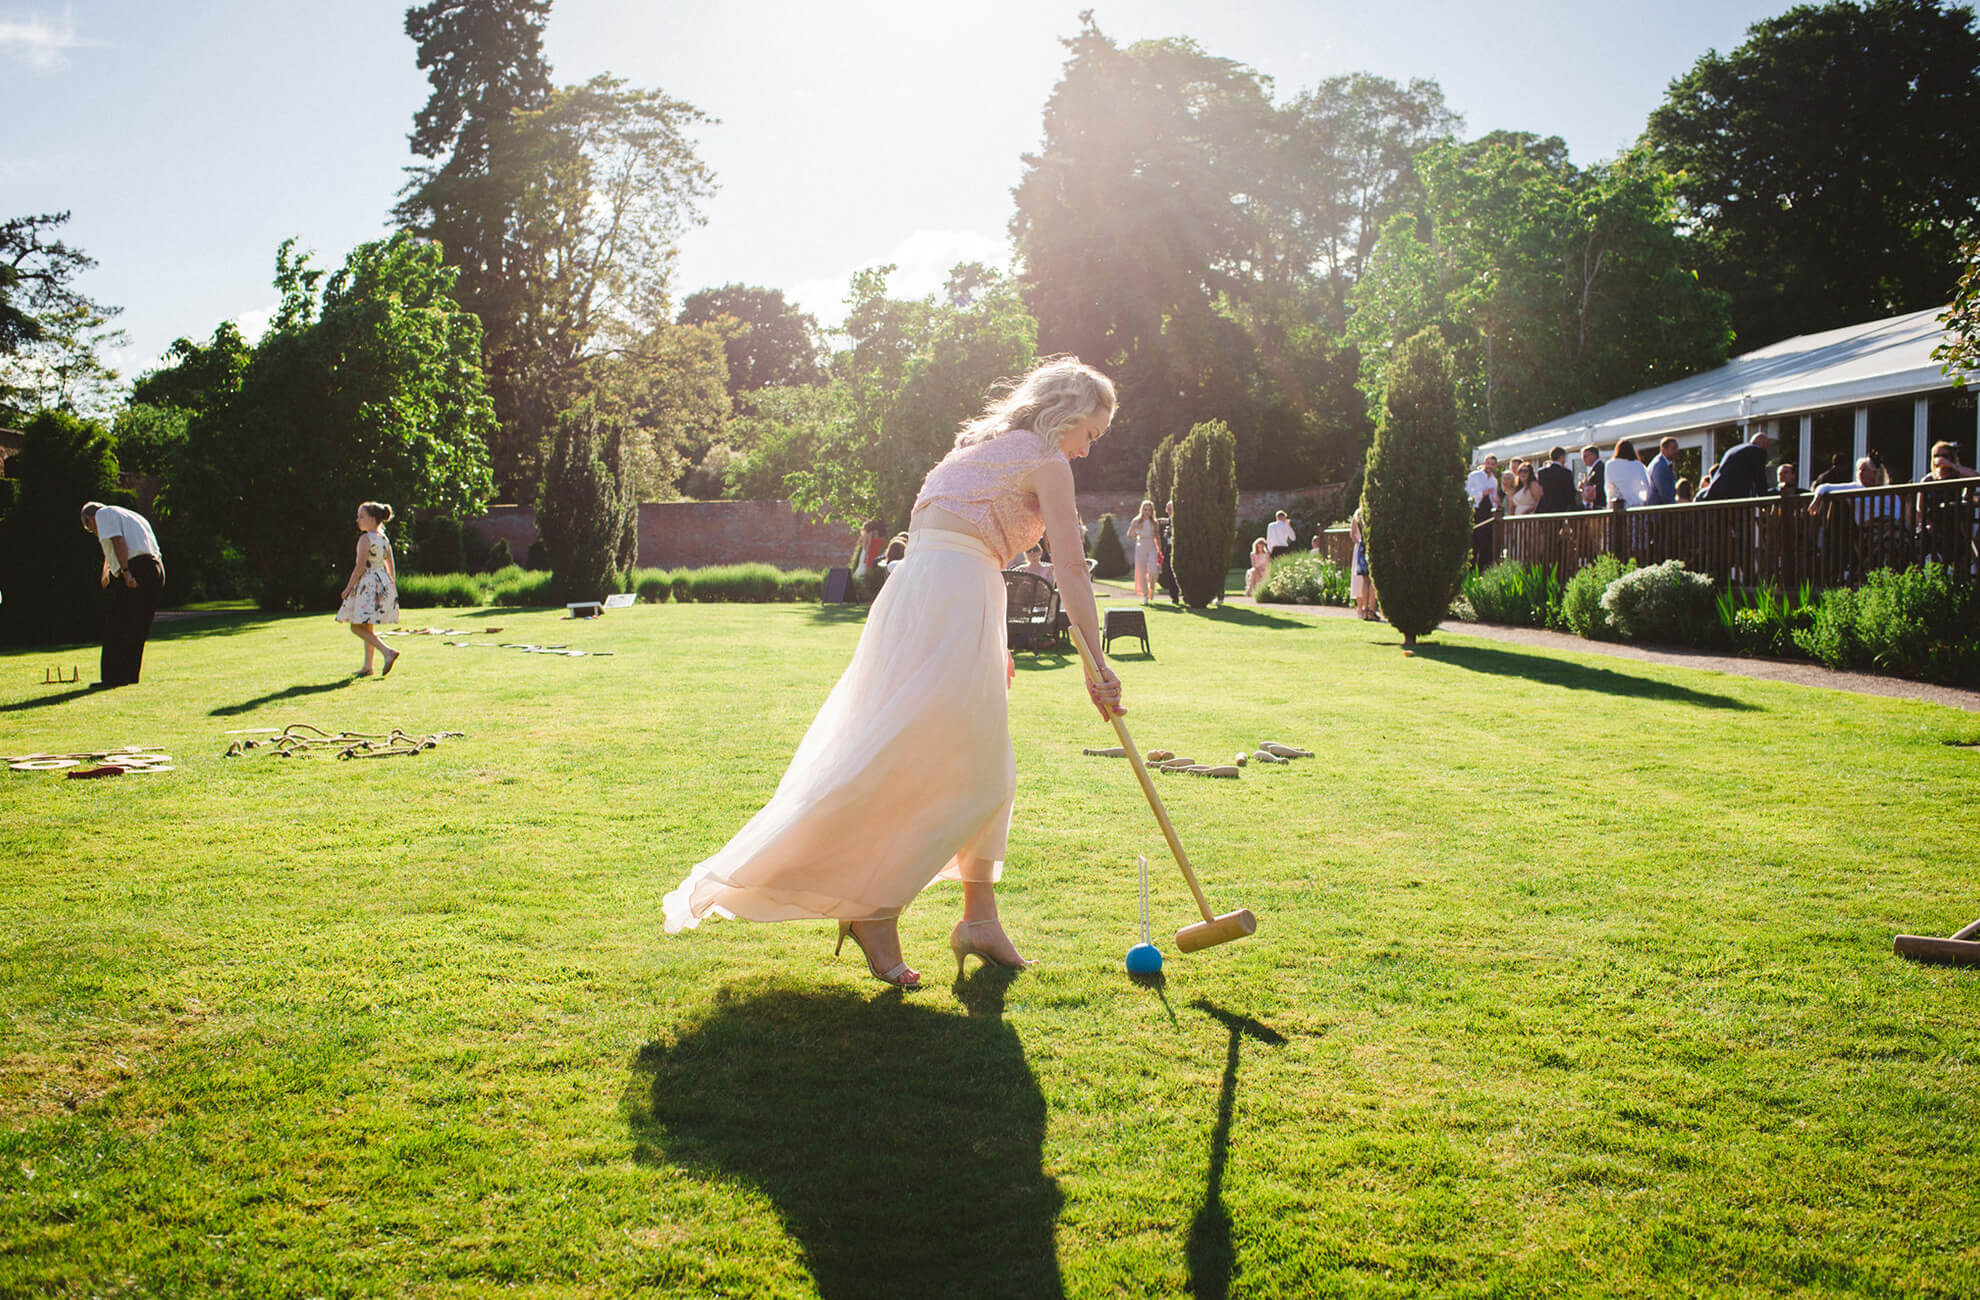 Wedding guests play croquet in the walled gardens at Combermere wedding venue in Cheshire